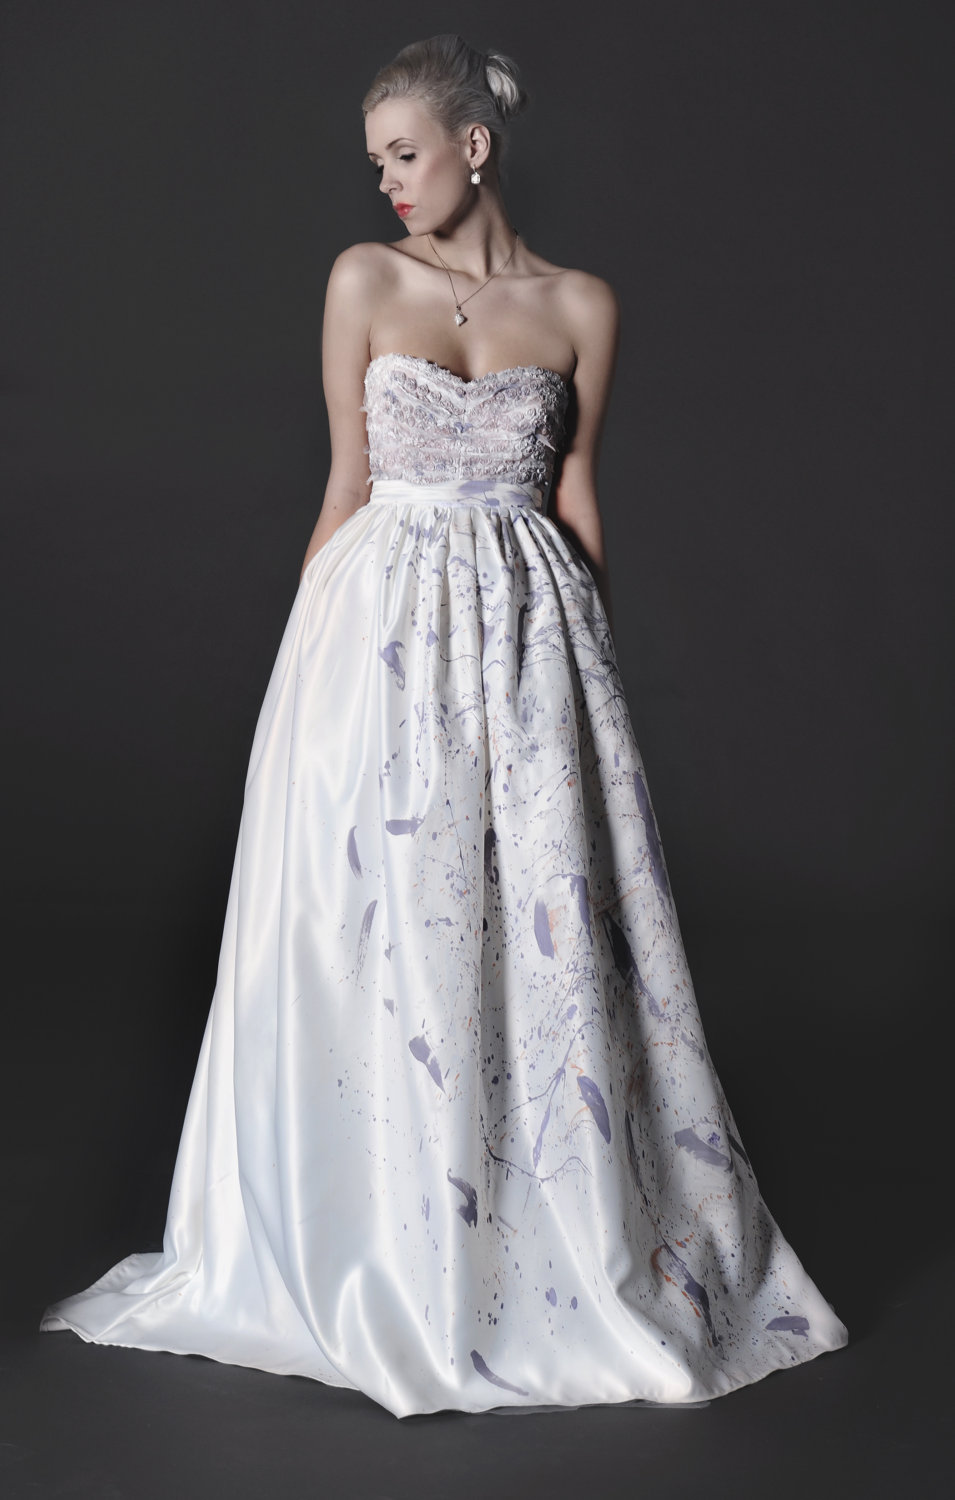 2012-wedding-dress-white-a-line-with-modern-color-details.original